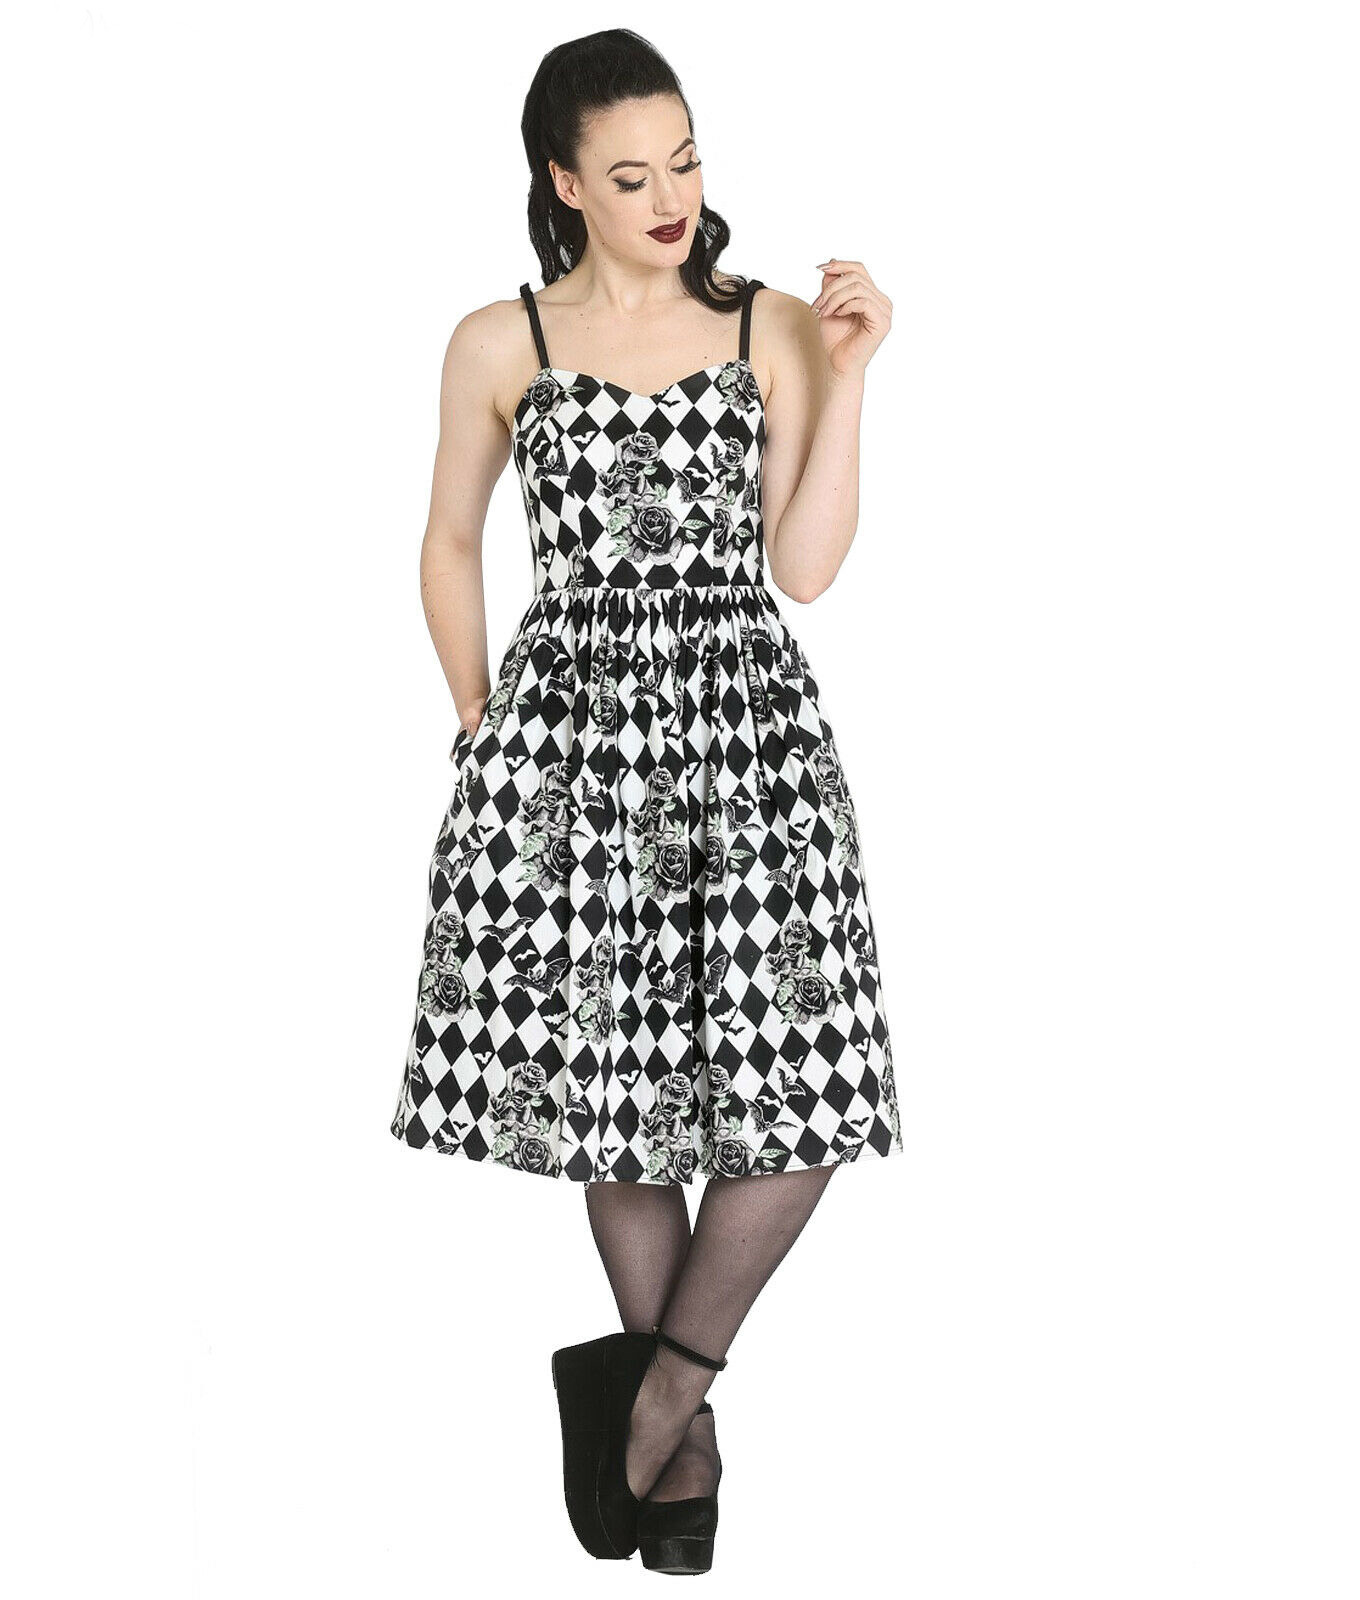 Hell-Bunny-Black-Harlequin-Pinup-50s-Gothic-Dress-HAUNTLEY-Bats-Roses-All-Sizes thumbnail 27